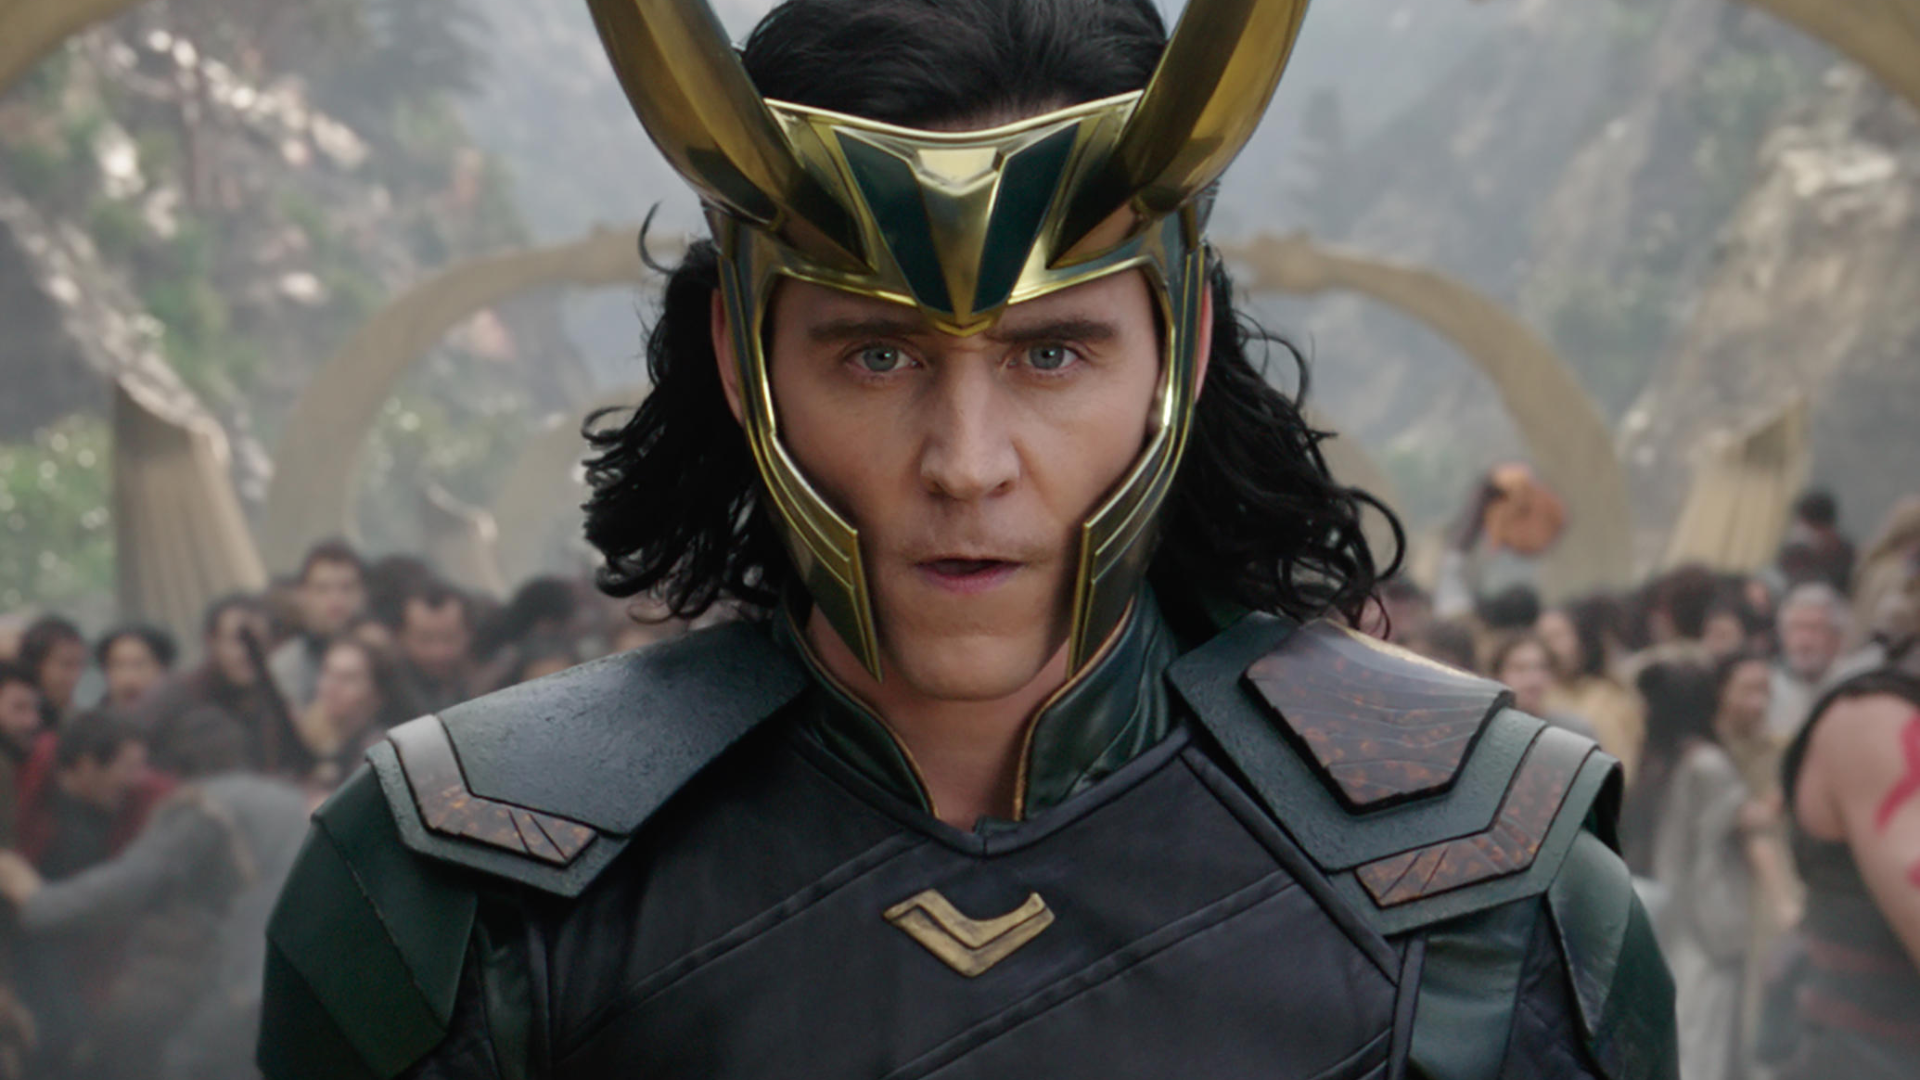 7c6df1c8 0ec9 4d36 ac86 6211196d218a loki tom hiddleston | Best TV shows 2021: From The White Lotus, to Marvel's Loki - CNET | The Paradise